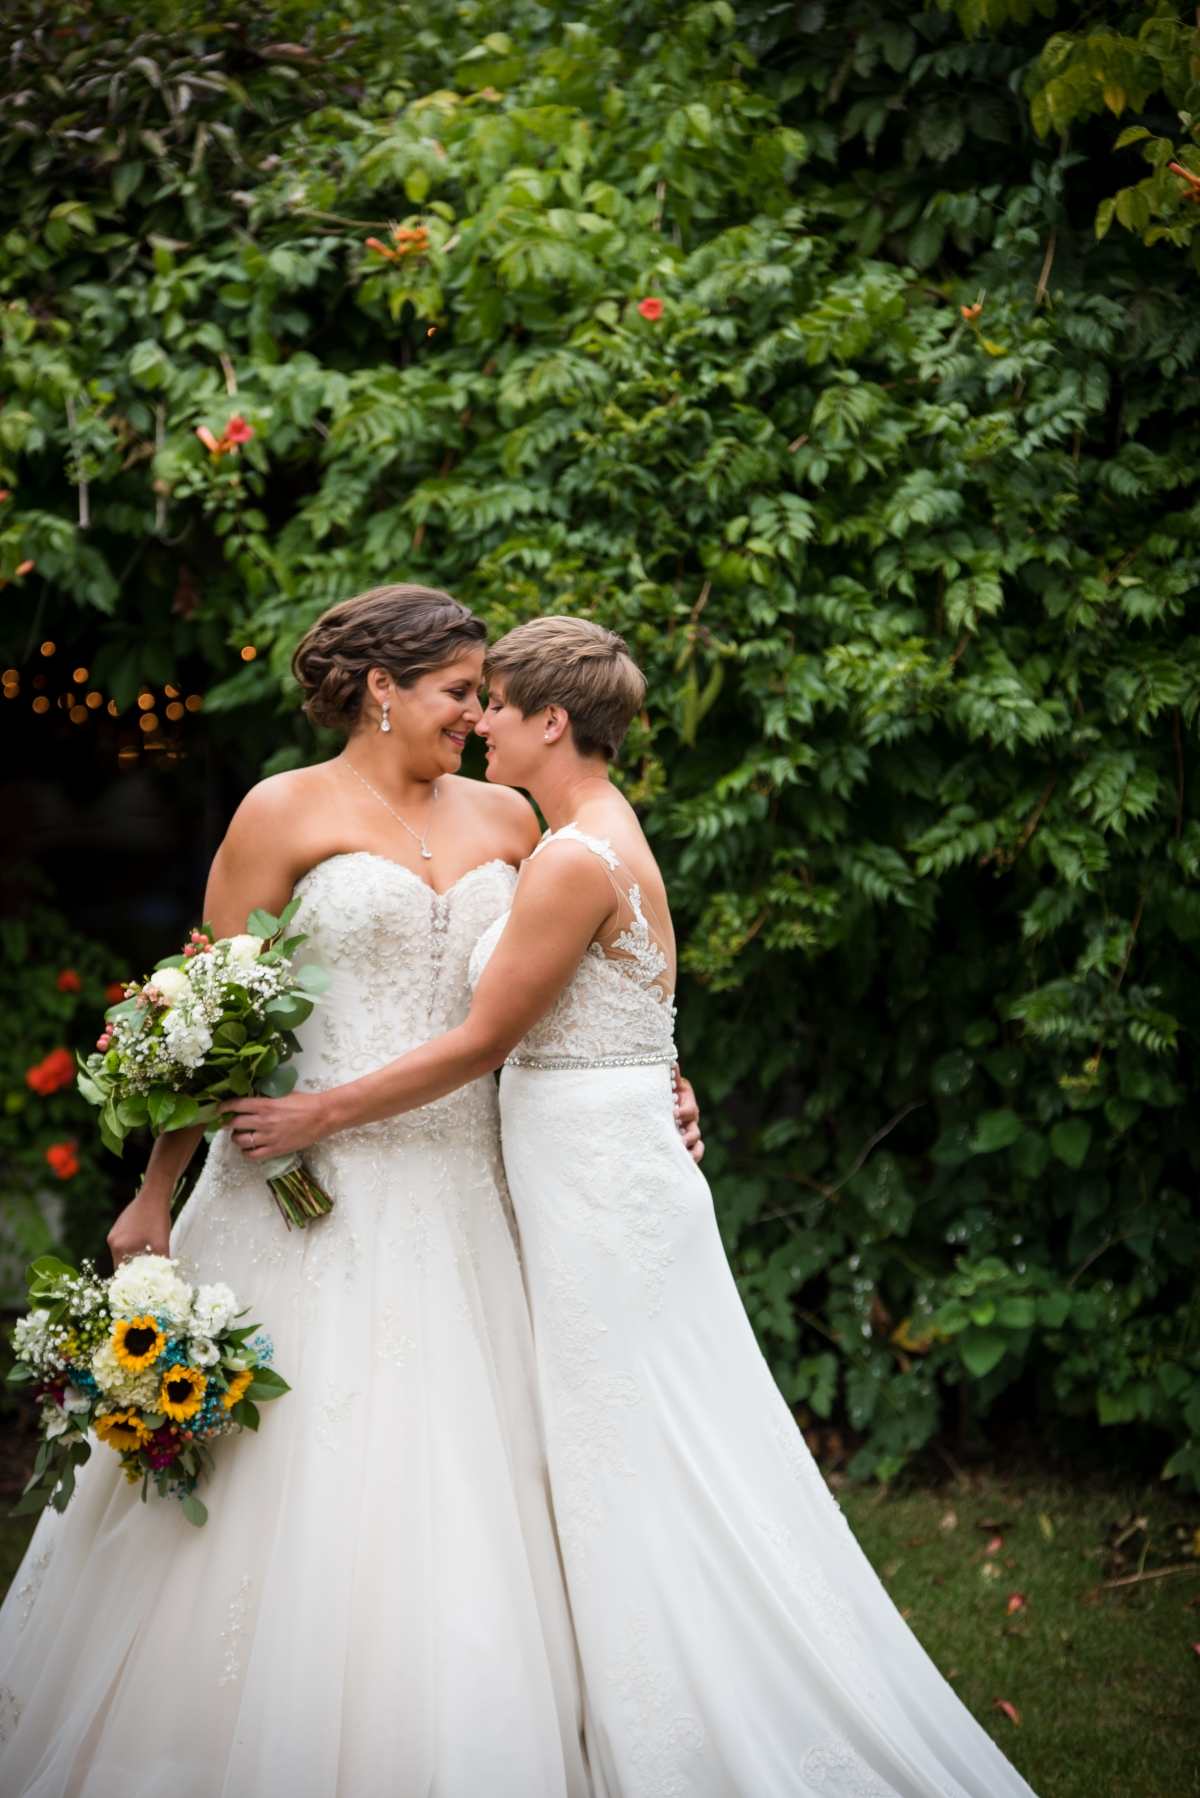 Chicago Lesbian Wedding at the Roundhouse 9